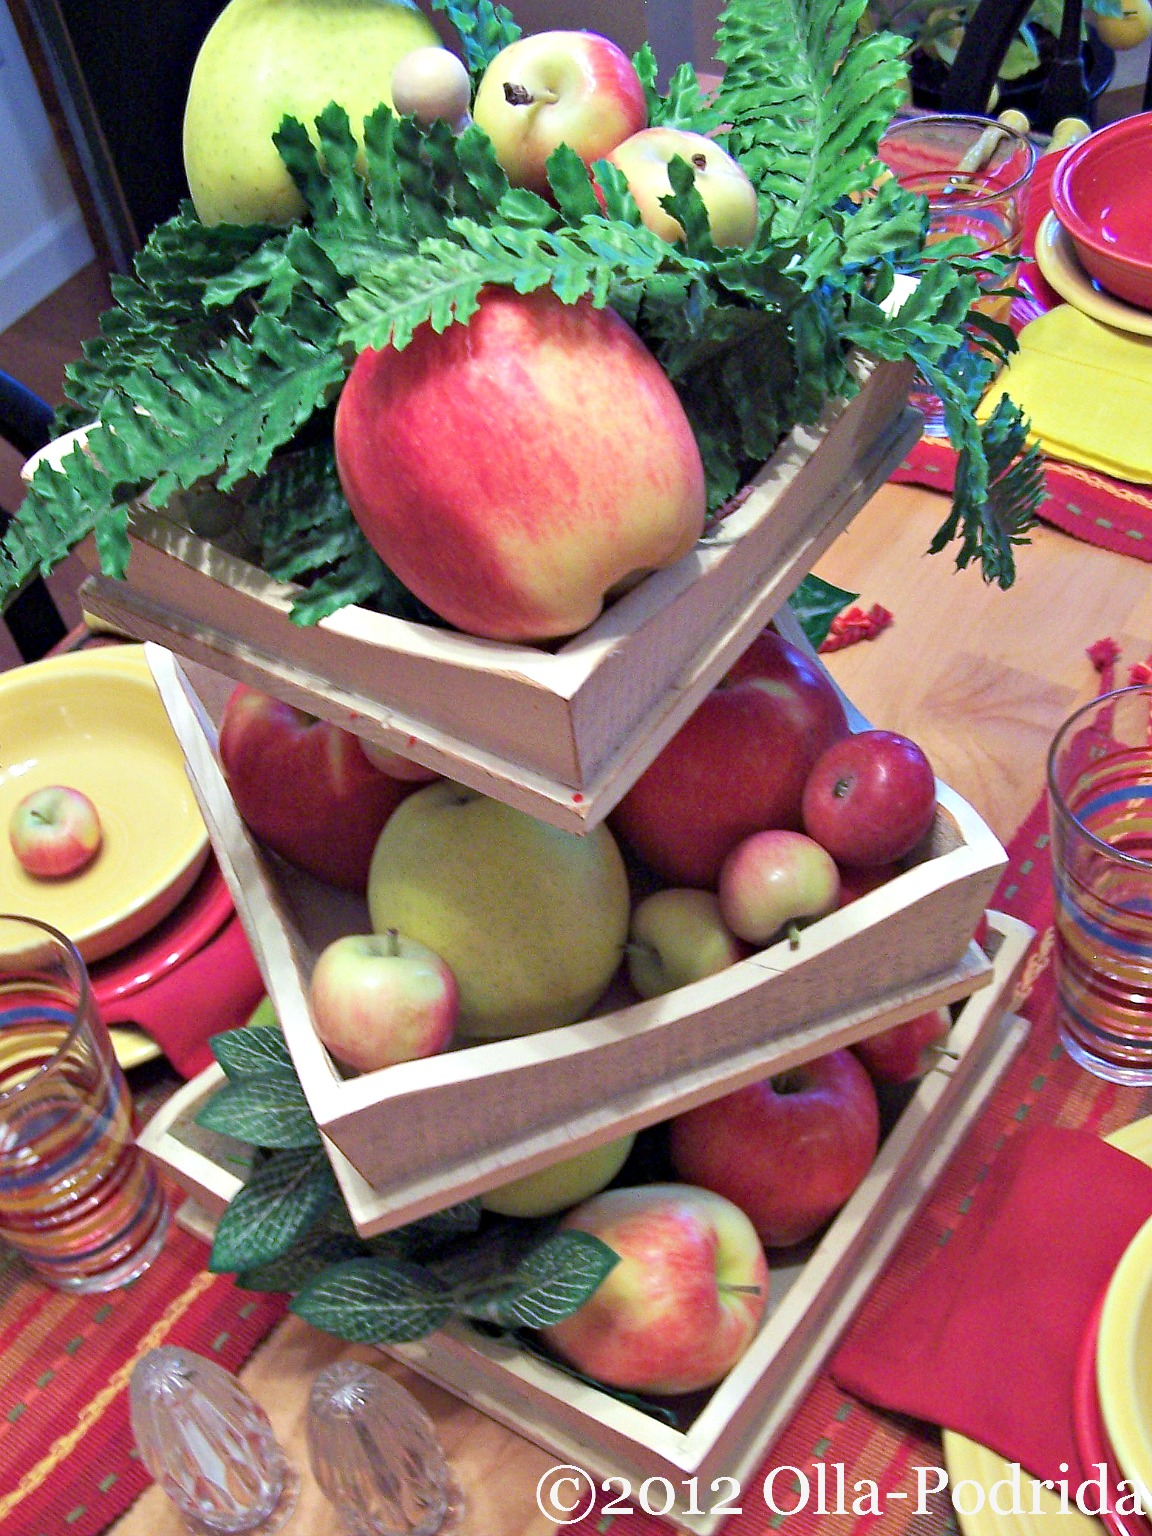 2012 fiestaware colors with How About Them Apples on Decorating With Fiestaware And The Newest Color Is besides 2013 Ram Reviews Yahoo moreover Would you trust diane keaton furthermore Polar Heart Rate Zones Chart besides Vintage Monday Colorful Enamel Pot.